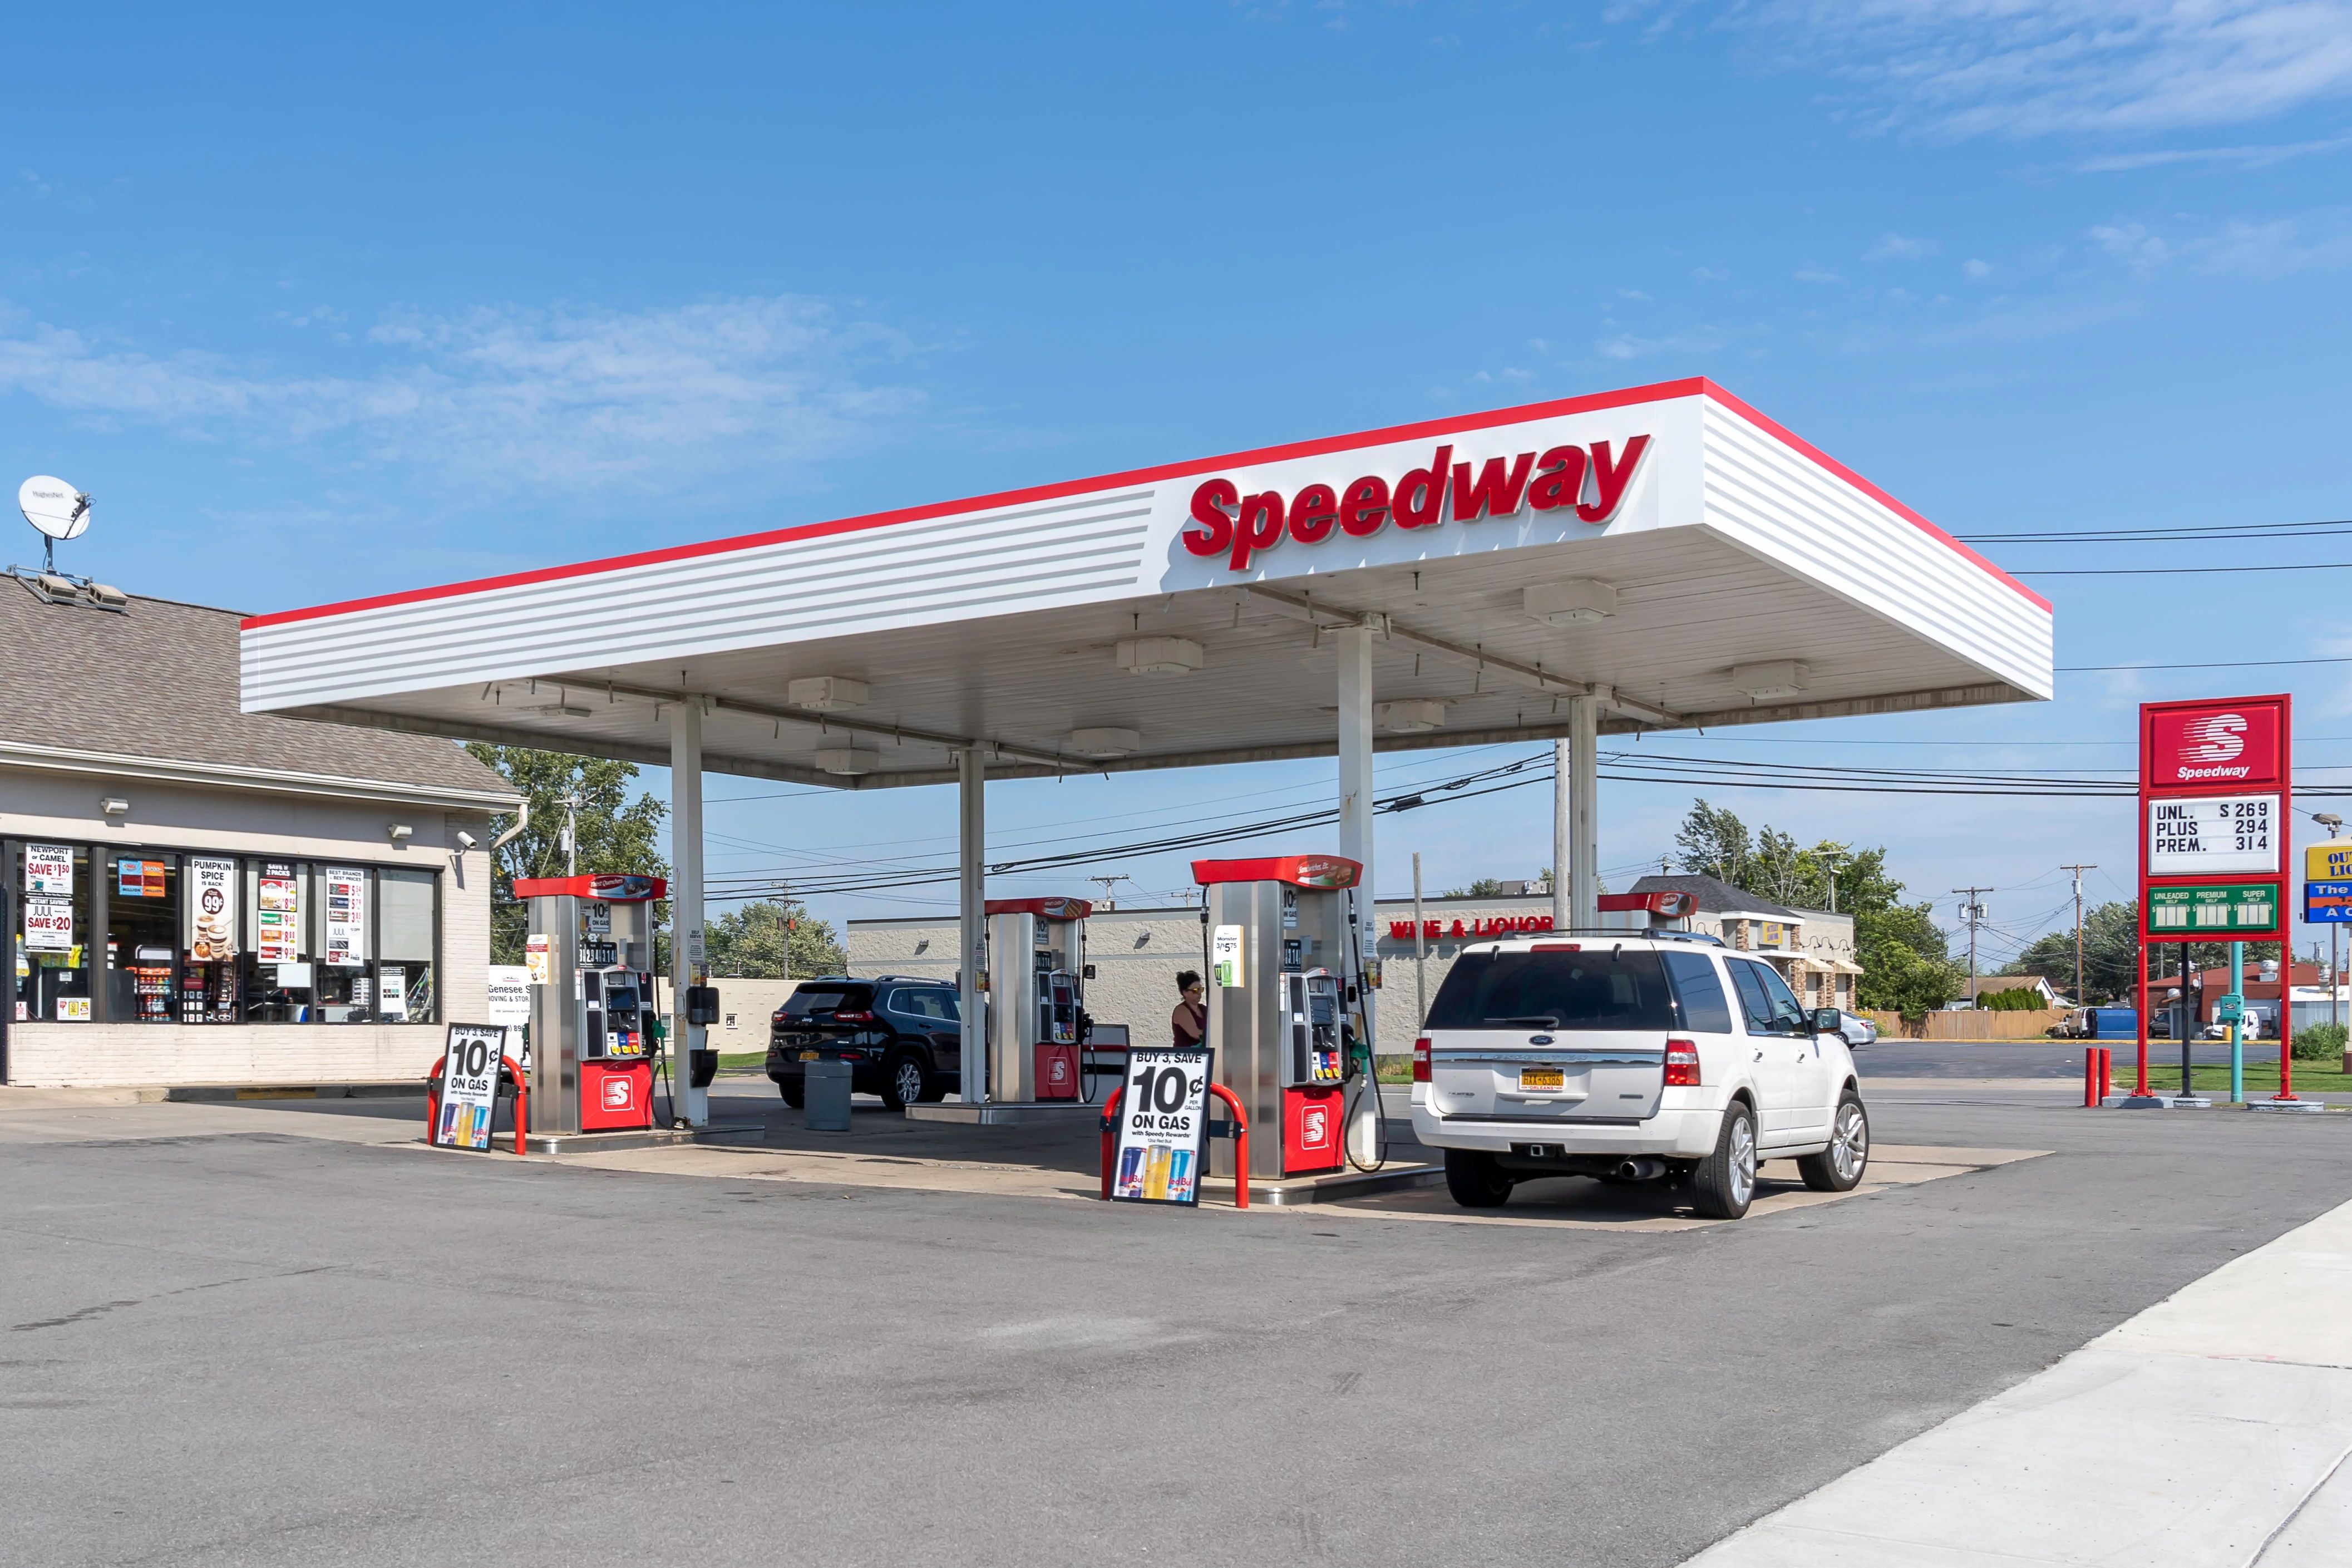 7-Eleven is shedding 293 convenience stores and gas stations but still owns thousands of others. (Getty Images)